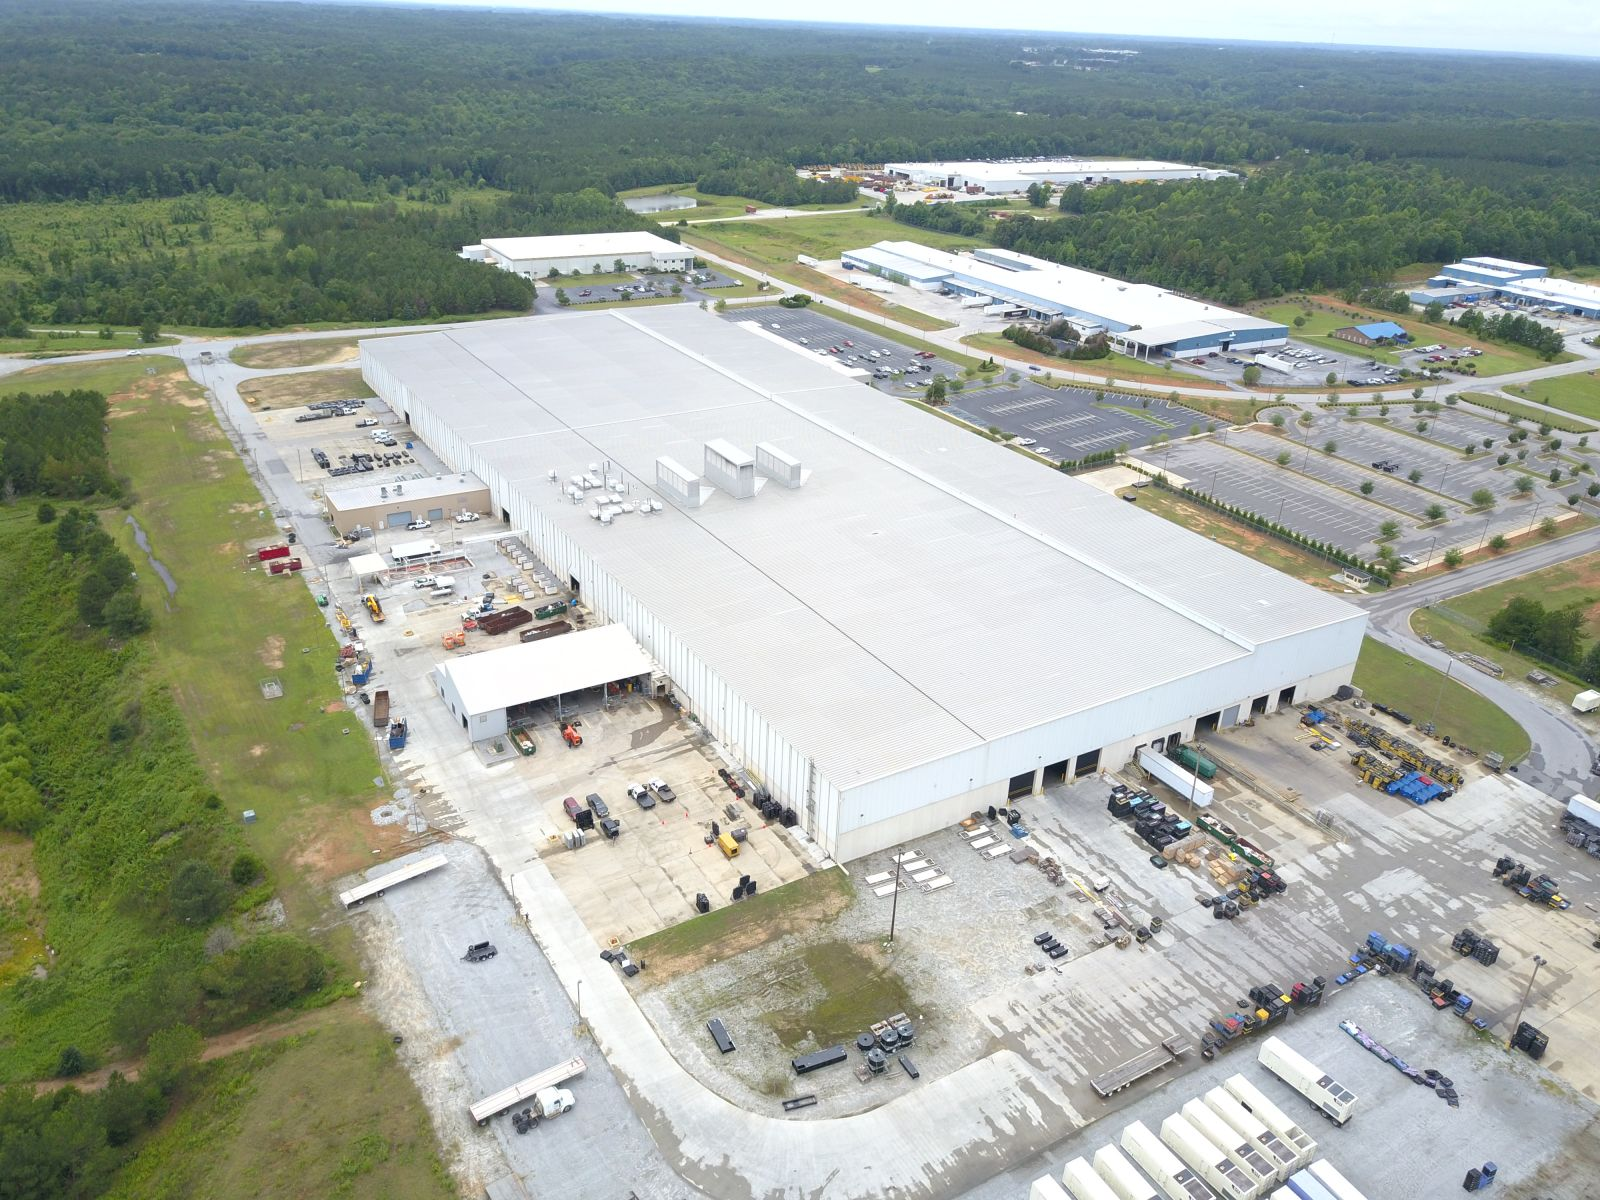 Samsung announced it would be moving into a facility in Newberry County. (Photo/Provided)